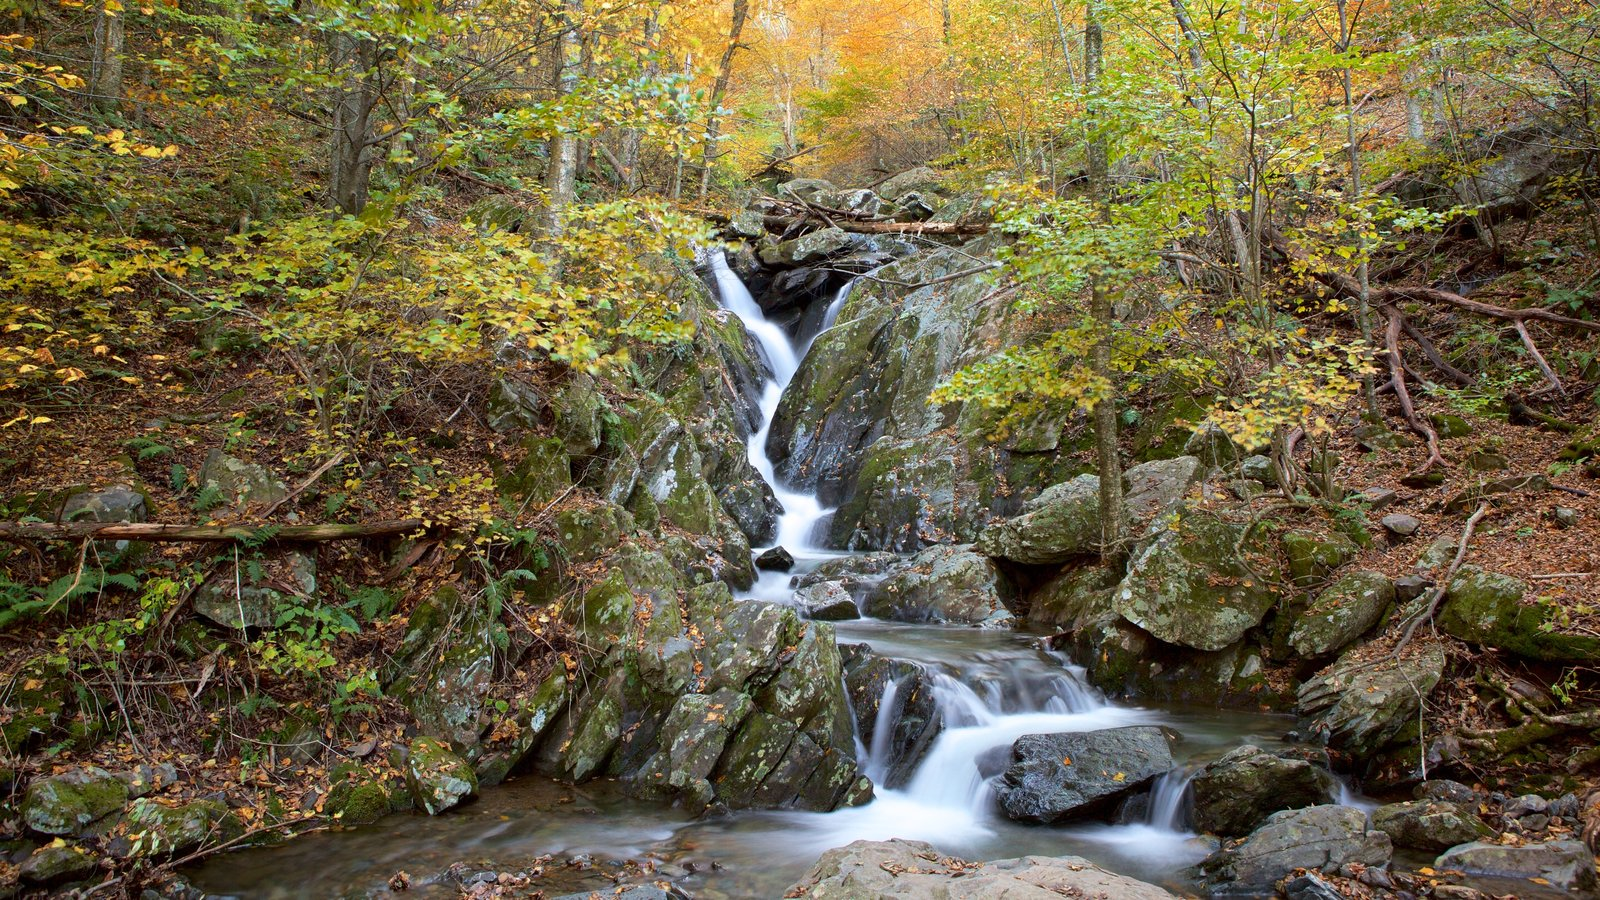 Shenandoah National Park which includes a waterfall, a river or creek and forest scenes